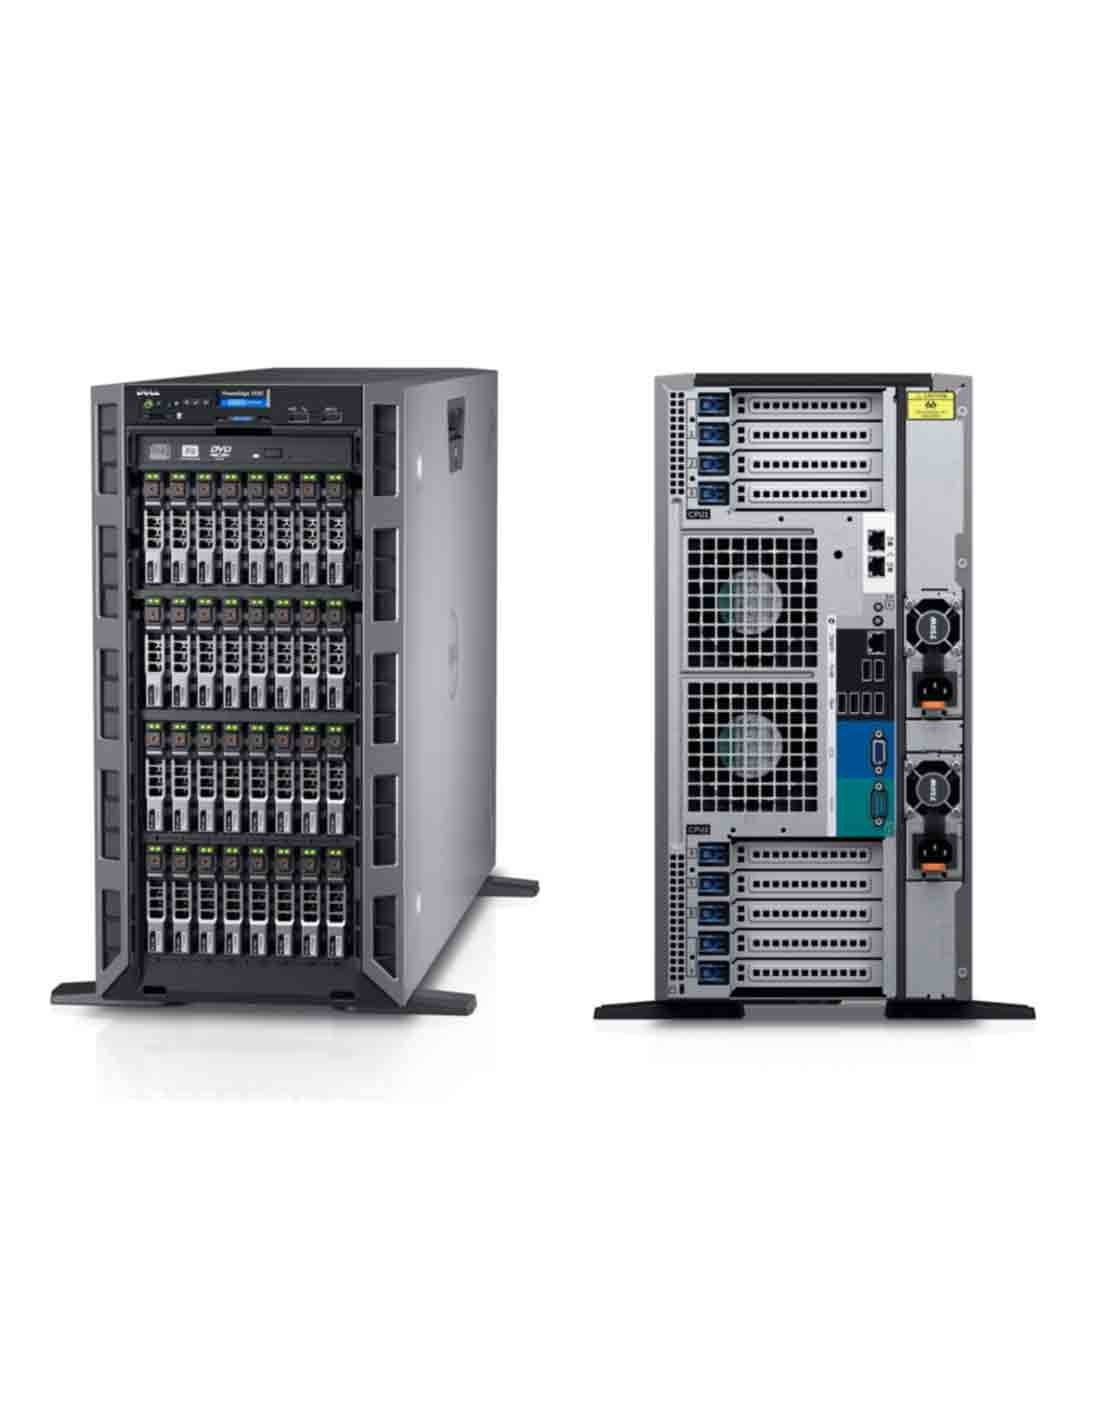 Dell PowerEdge T630 Tower Server Buy Online at a Cheap Price in Dubai Online Shop